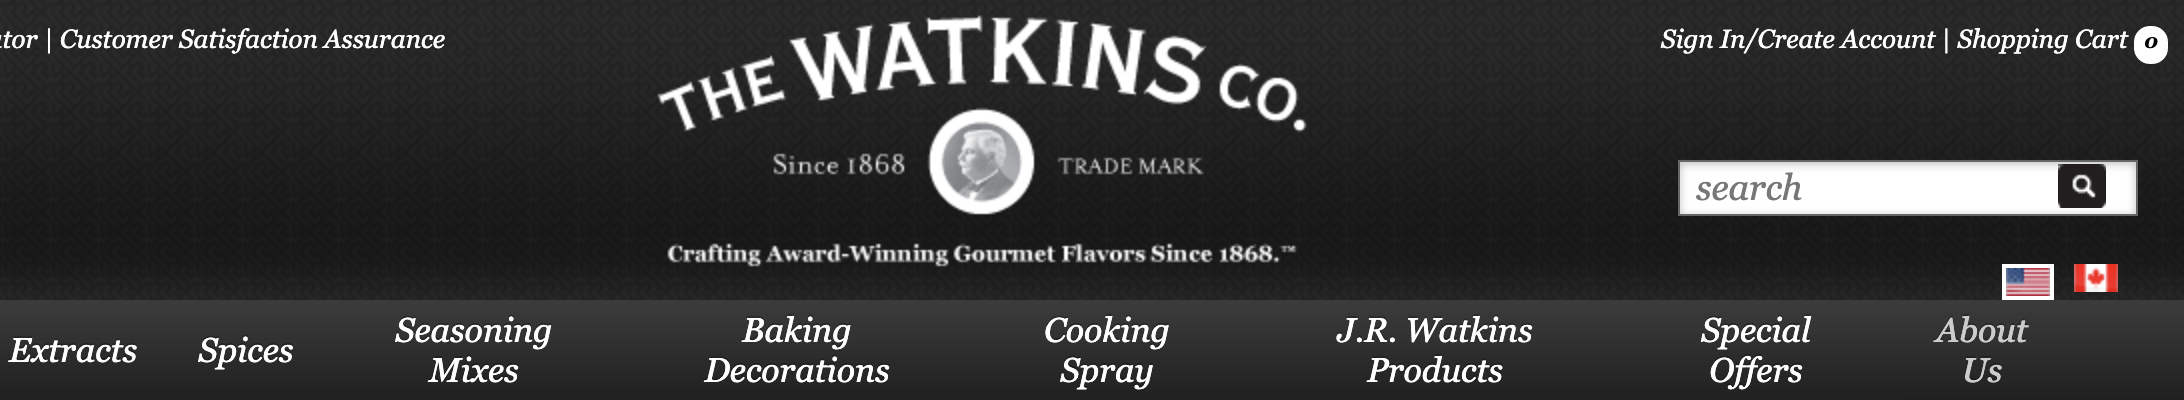 watkins products in the usa